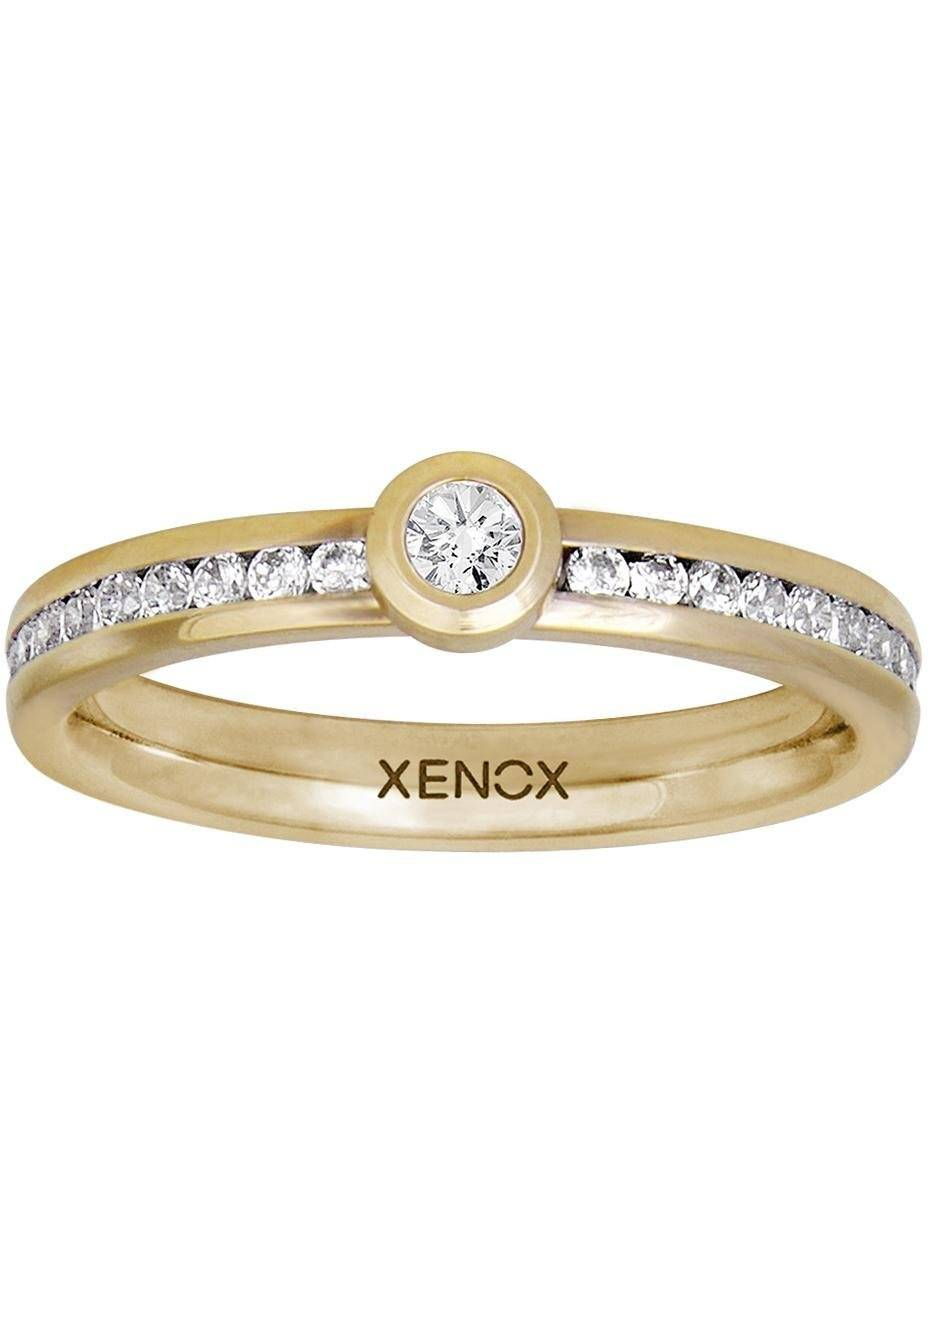 XENOX Fingerring »& friends, X2627G«, mit Zirkonia, goldfarben